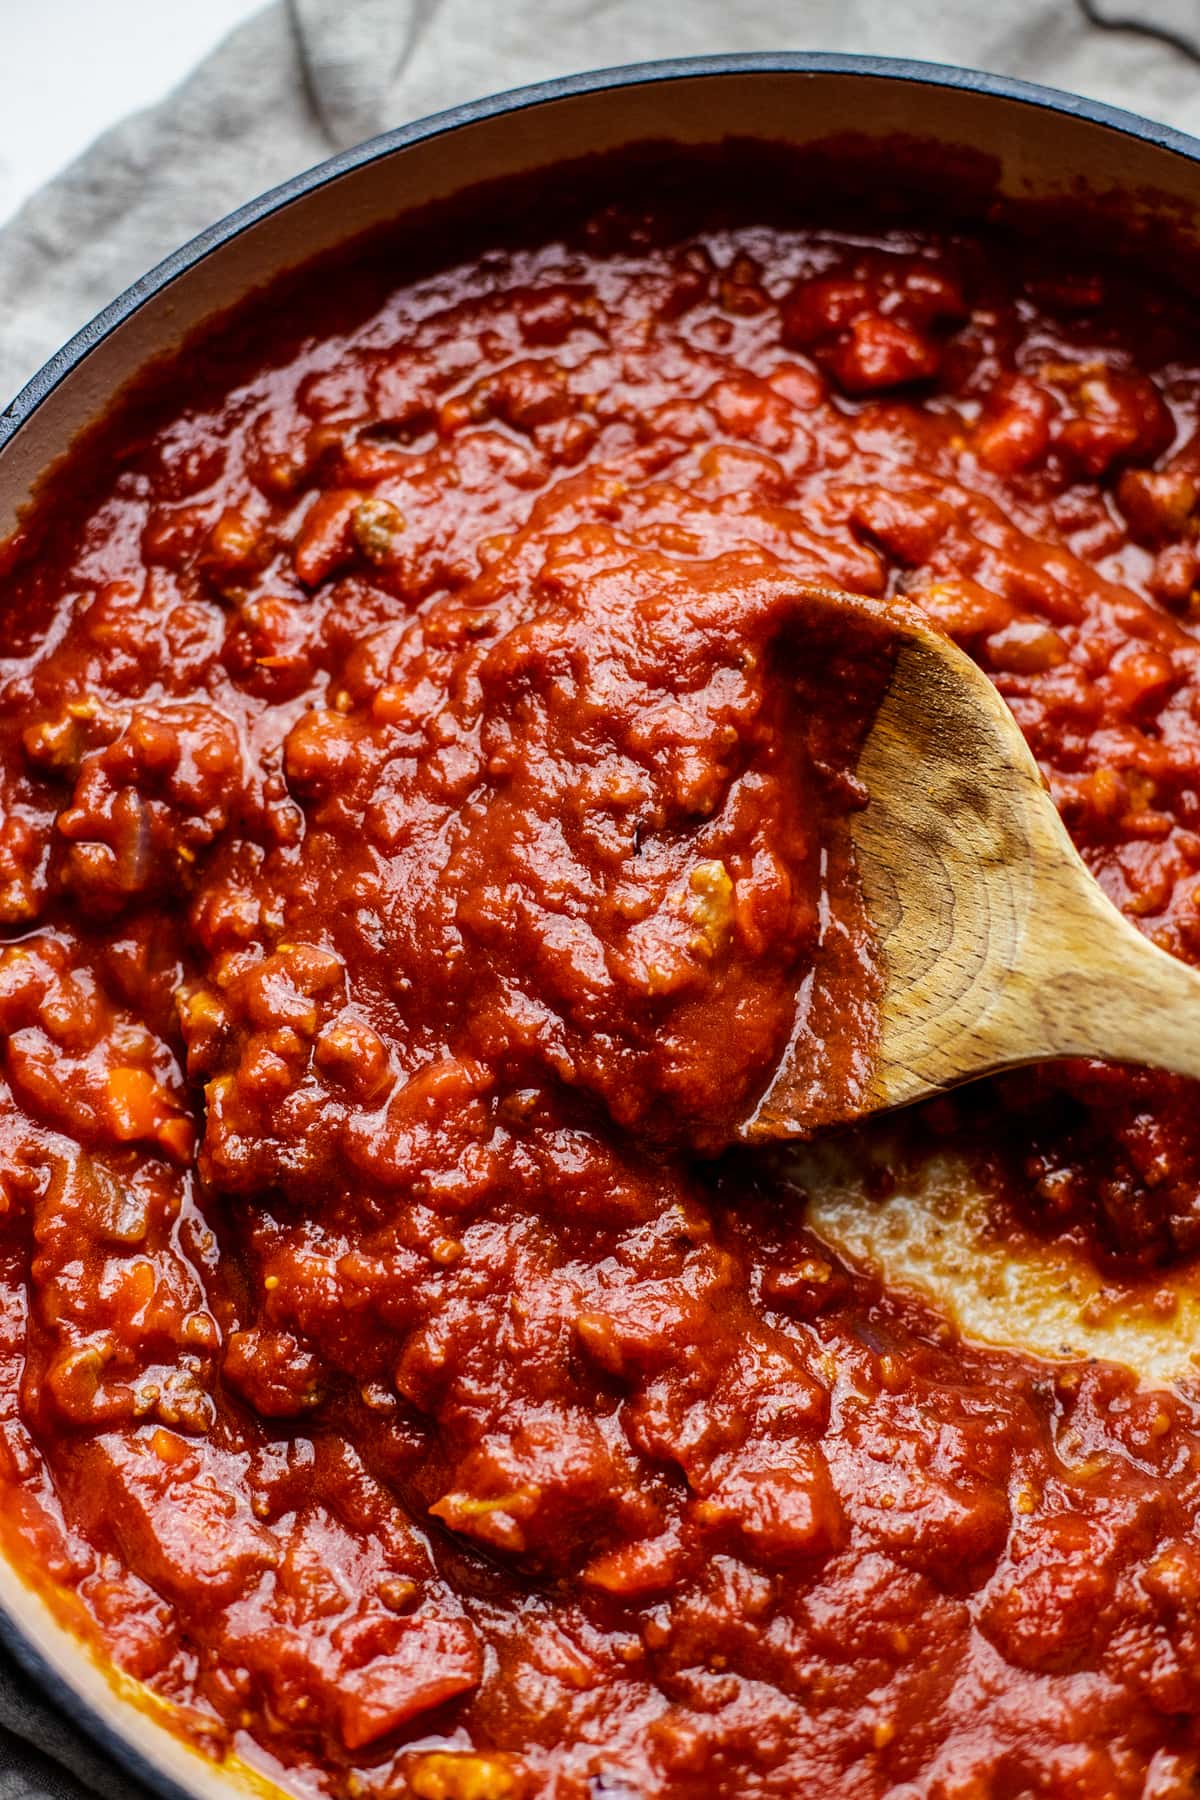 wooden spoon stirring red sauce.